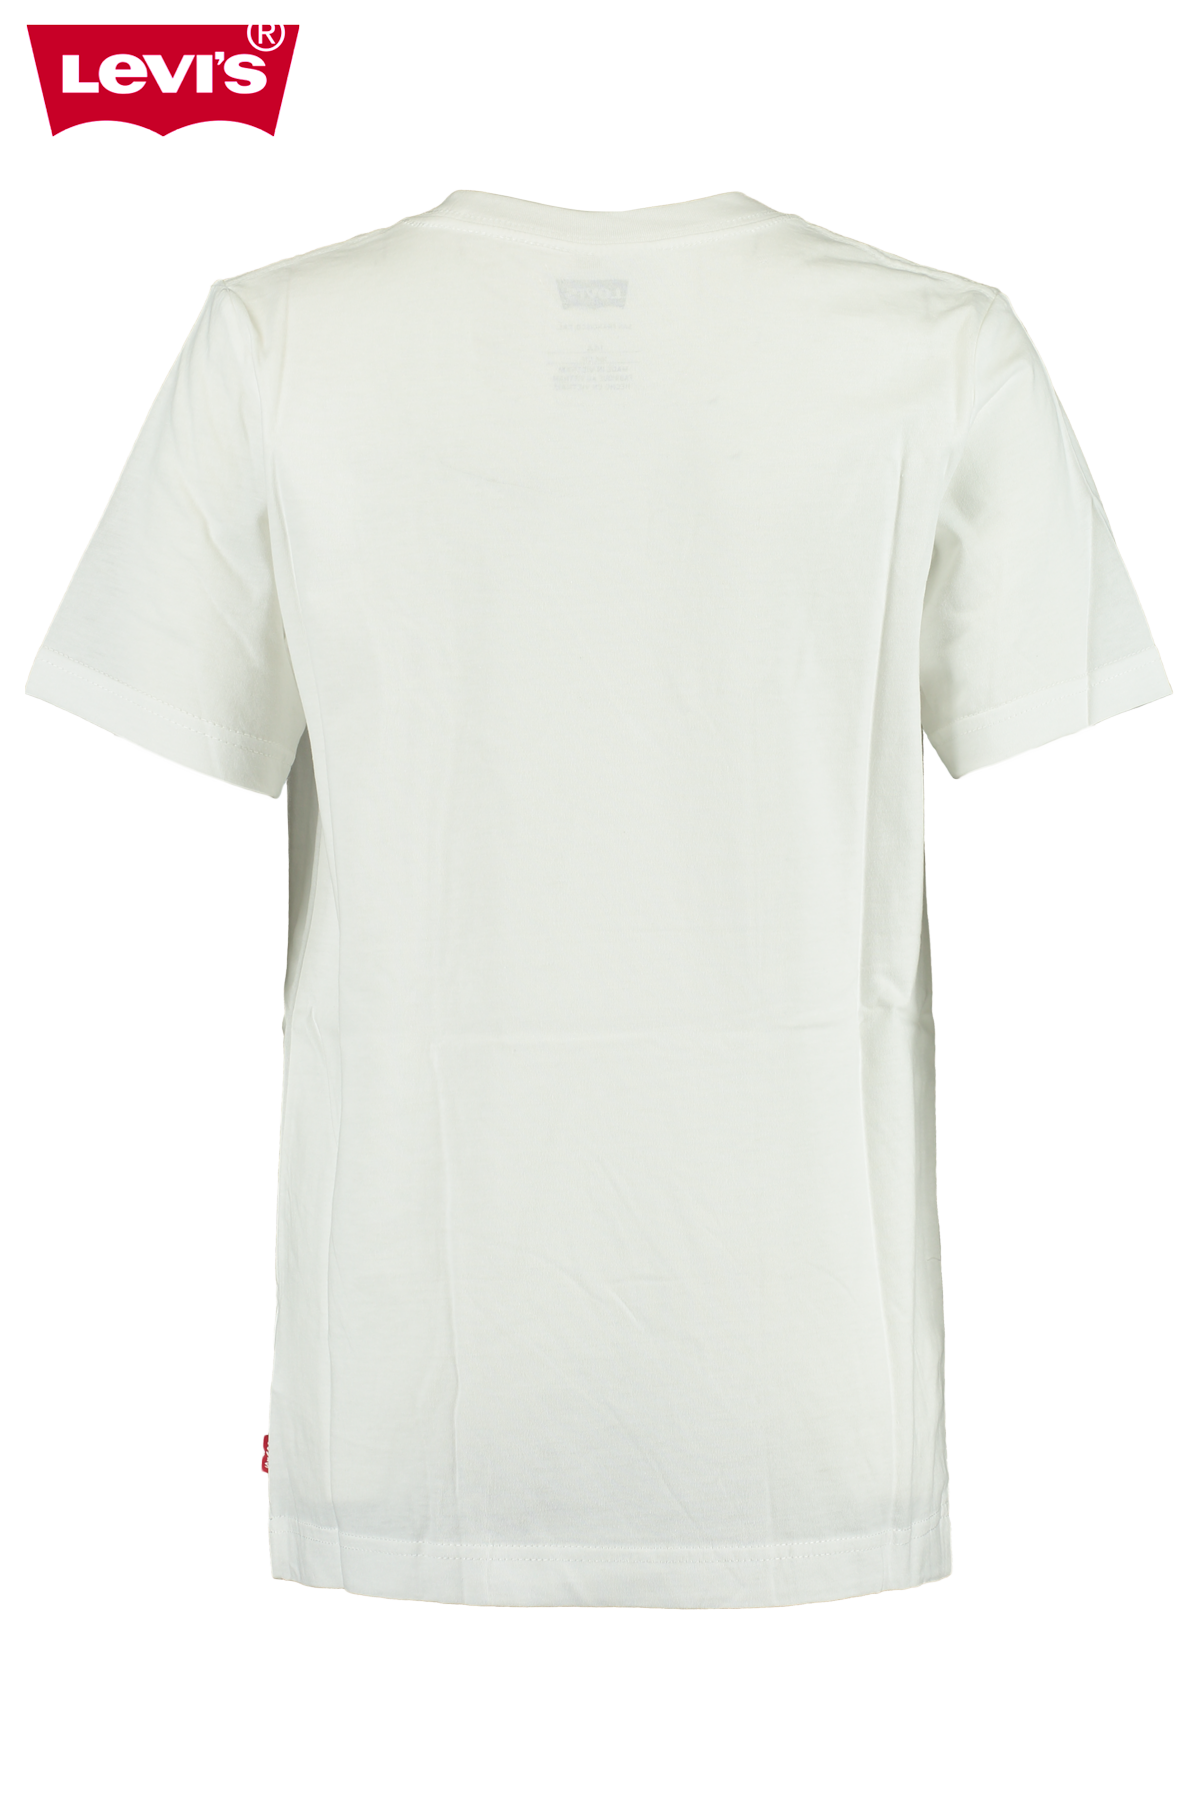 T-shirt Batwing chesthit